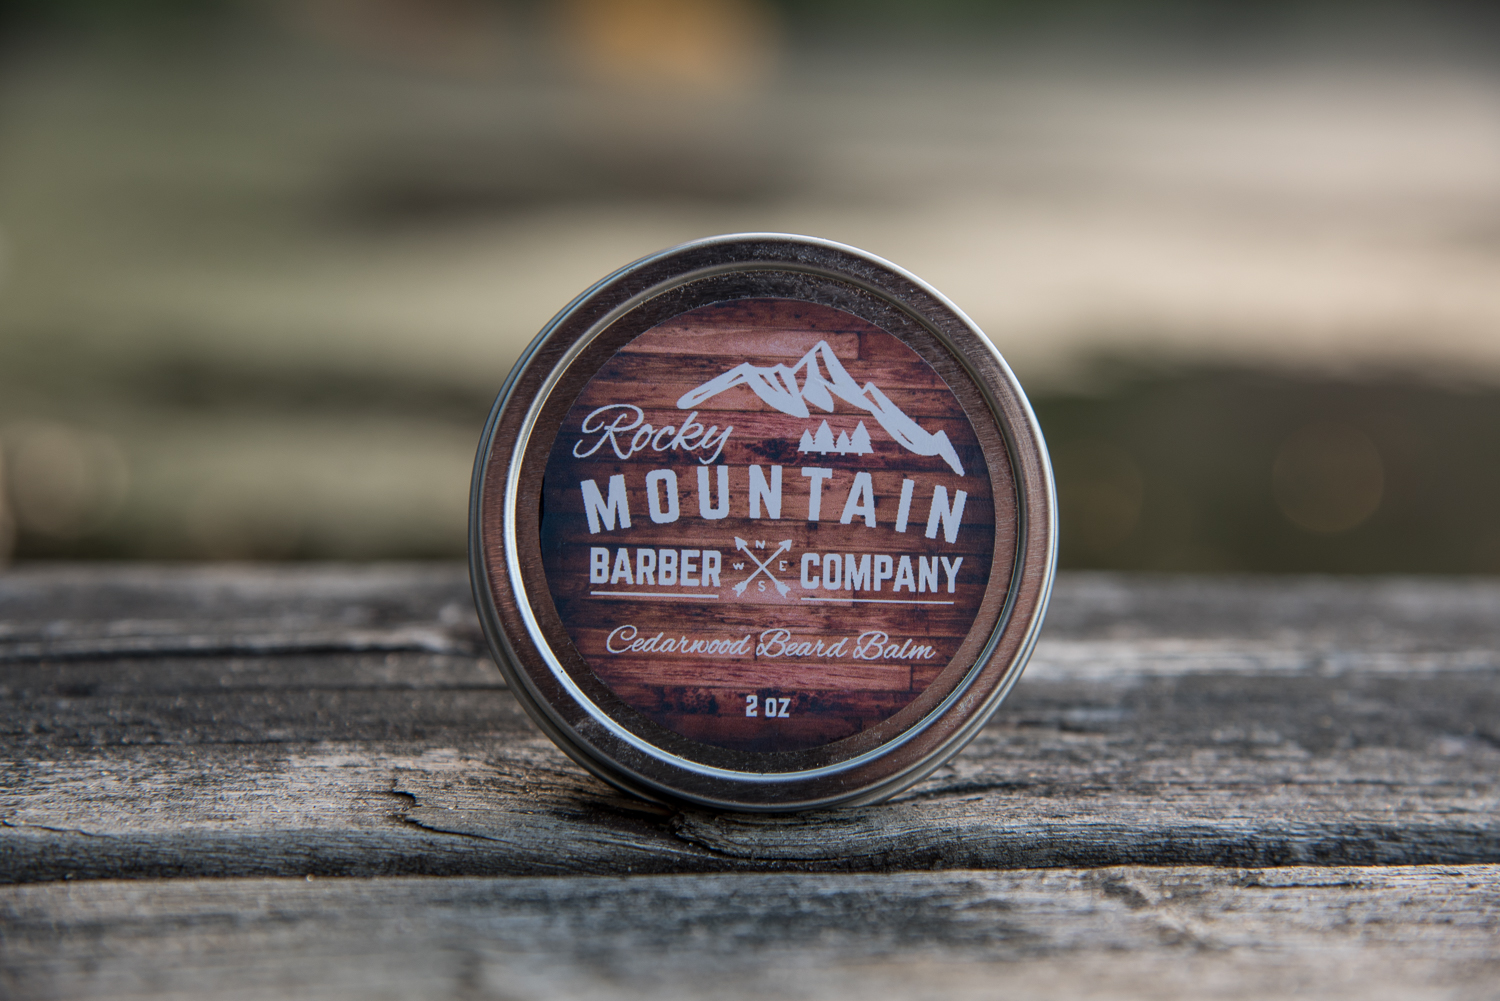 Hamilton Commercial Photographer - Lifestyle product photography - Rocky Mountain Barber Company01-2.jpg